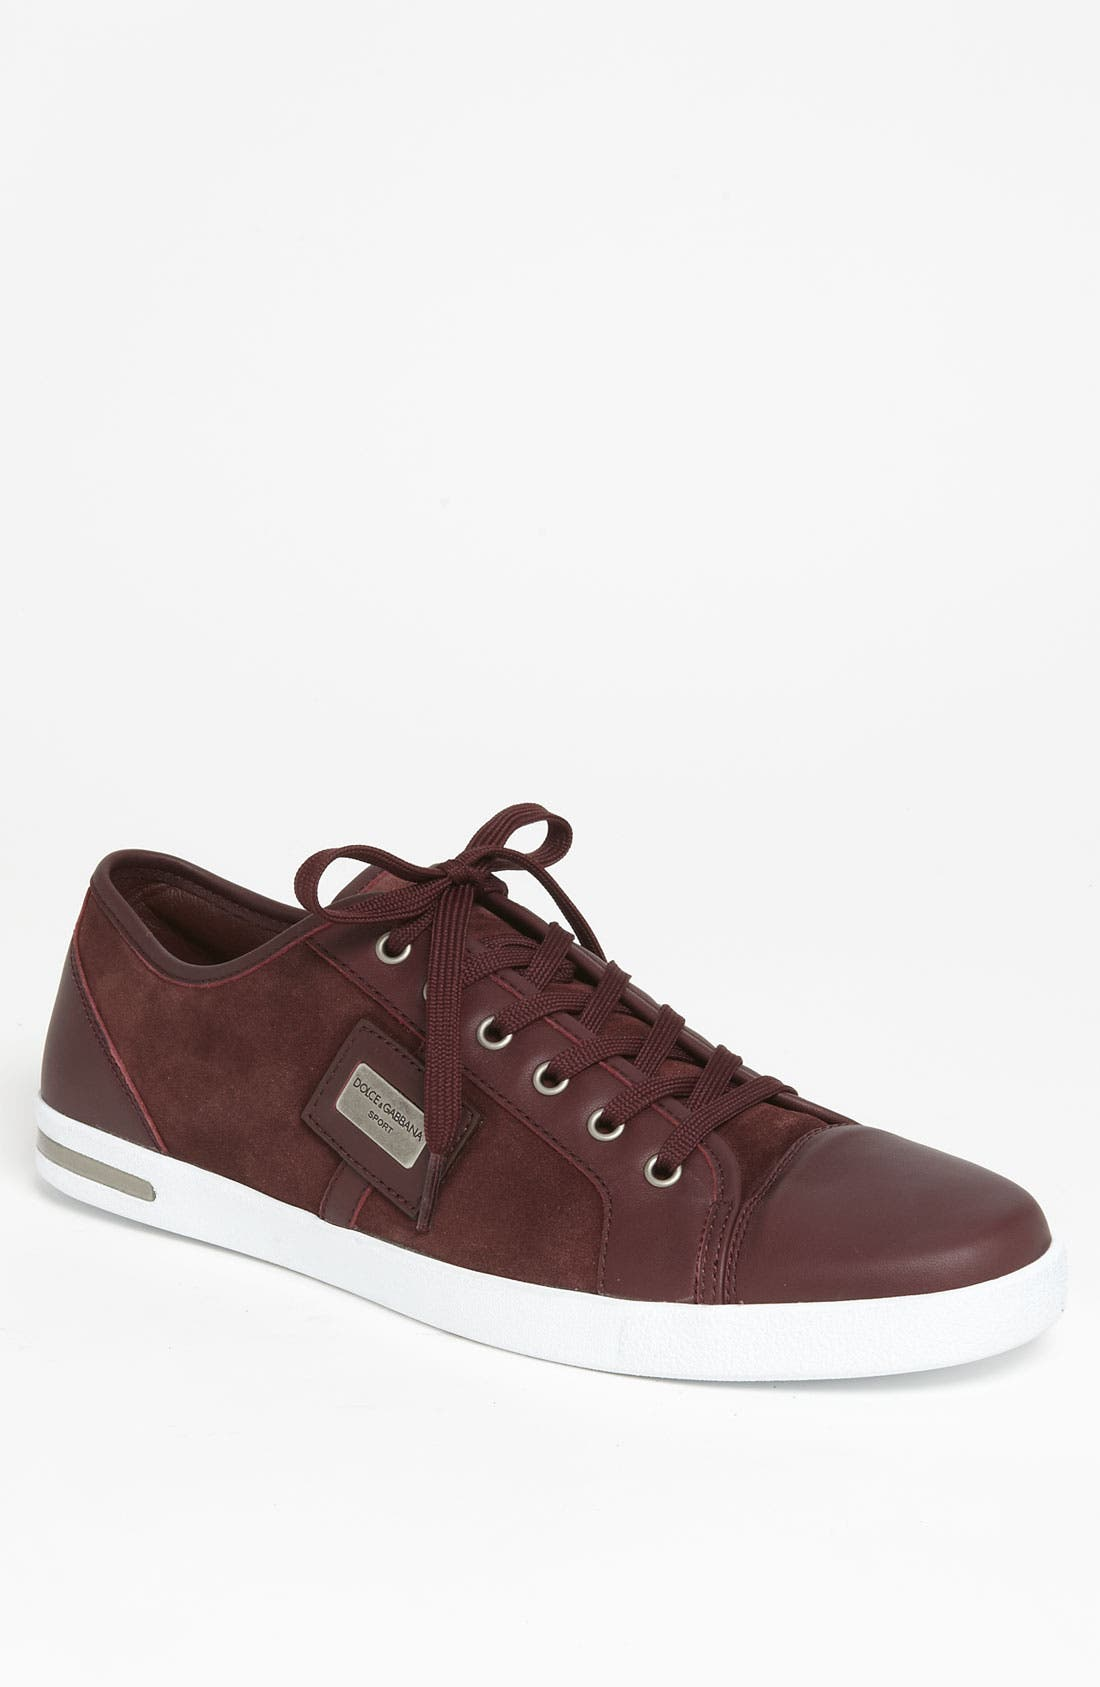 Main Image - Dolce&Gabbana Suede Sneaker